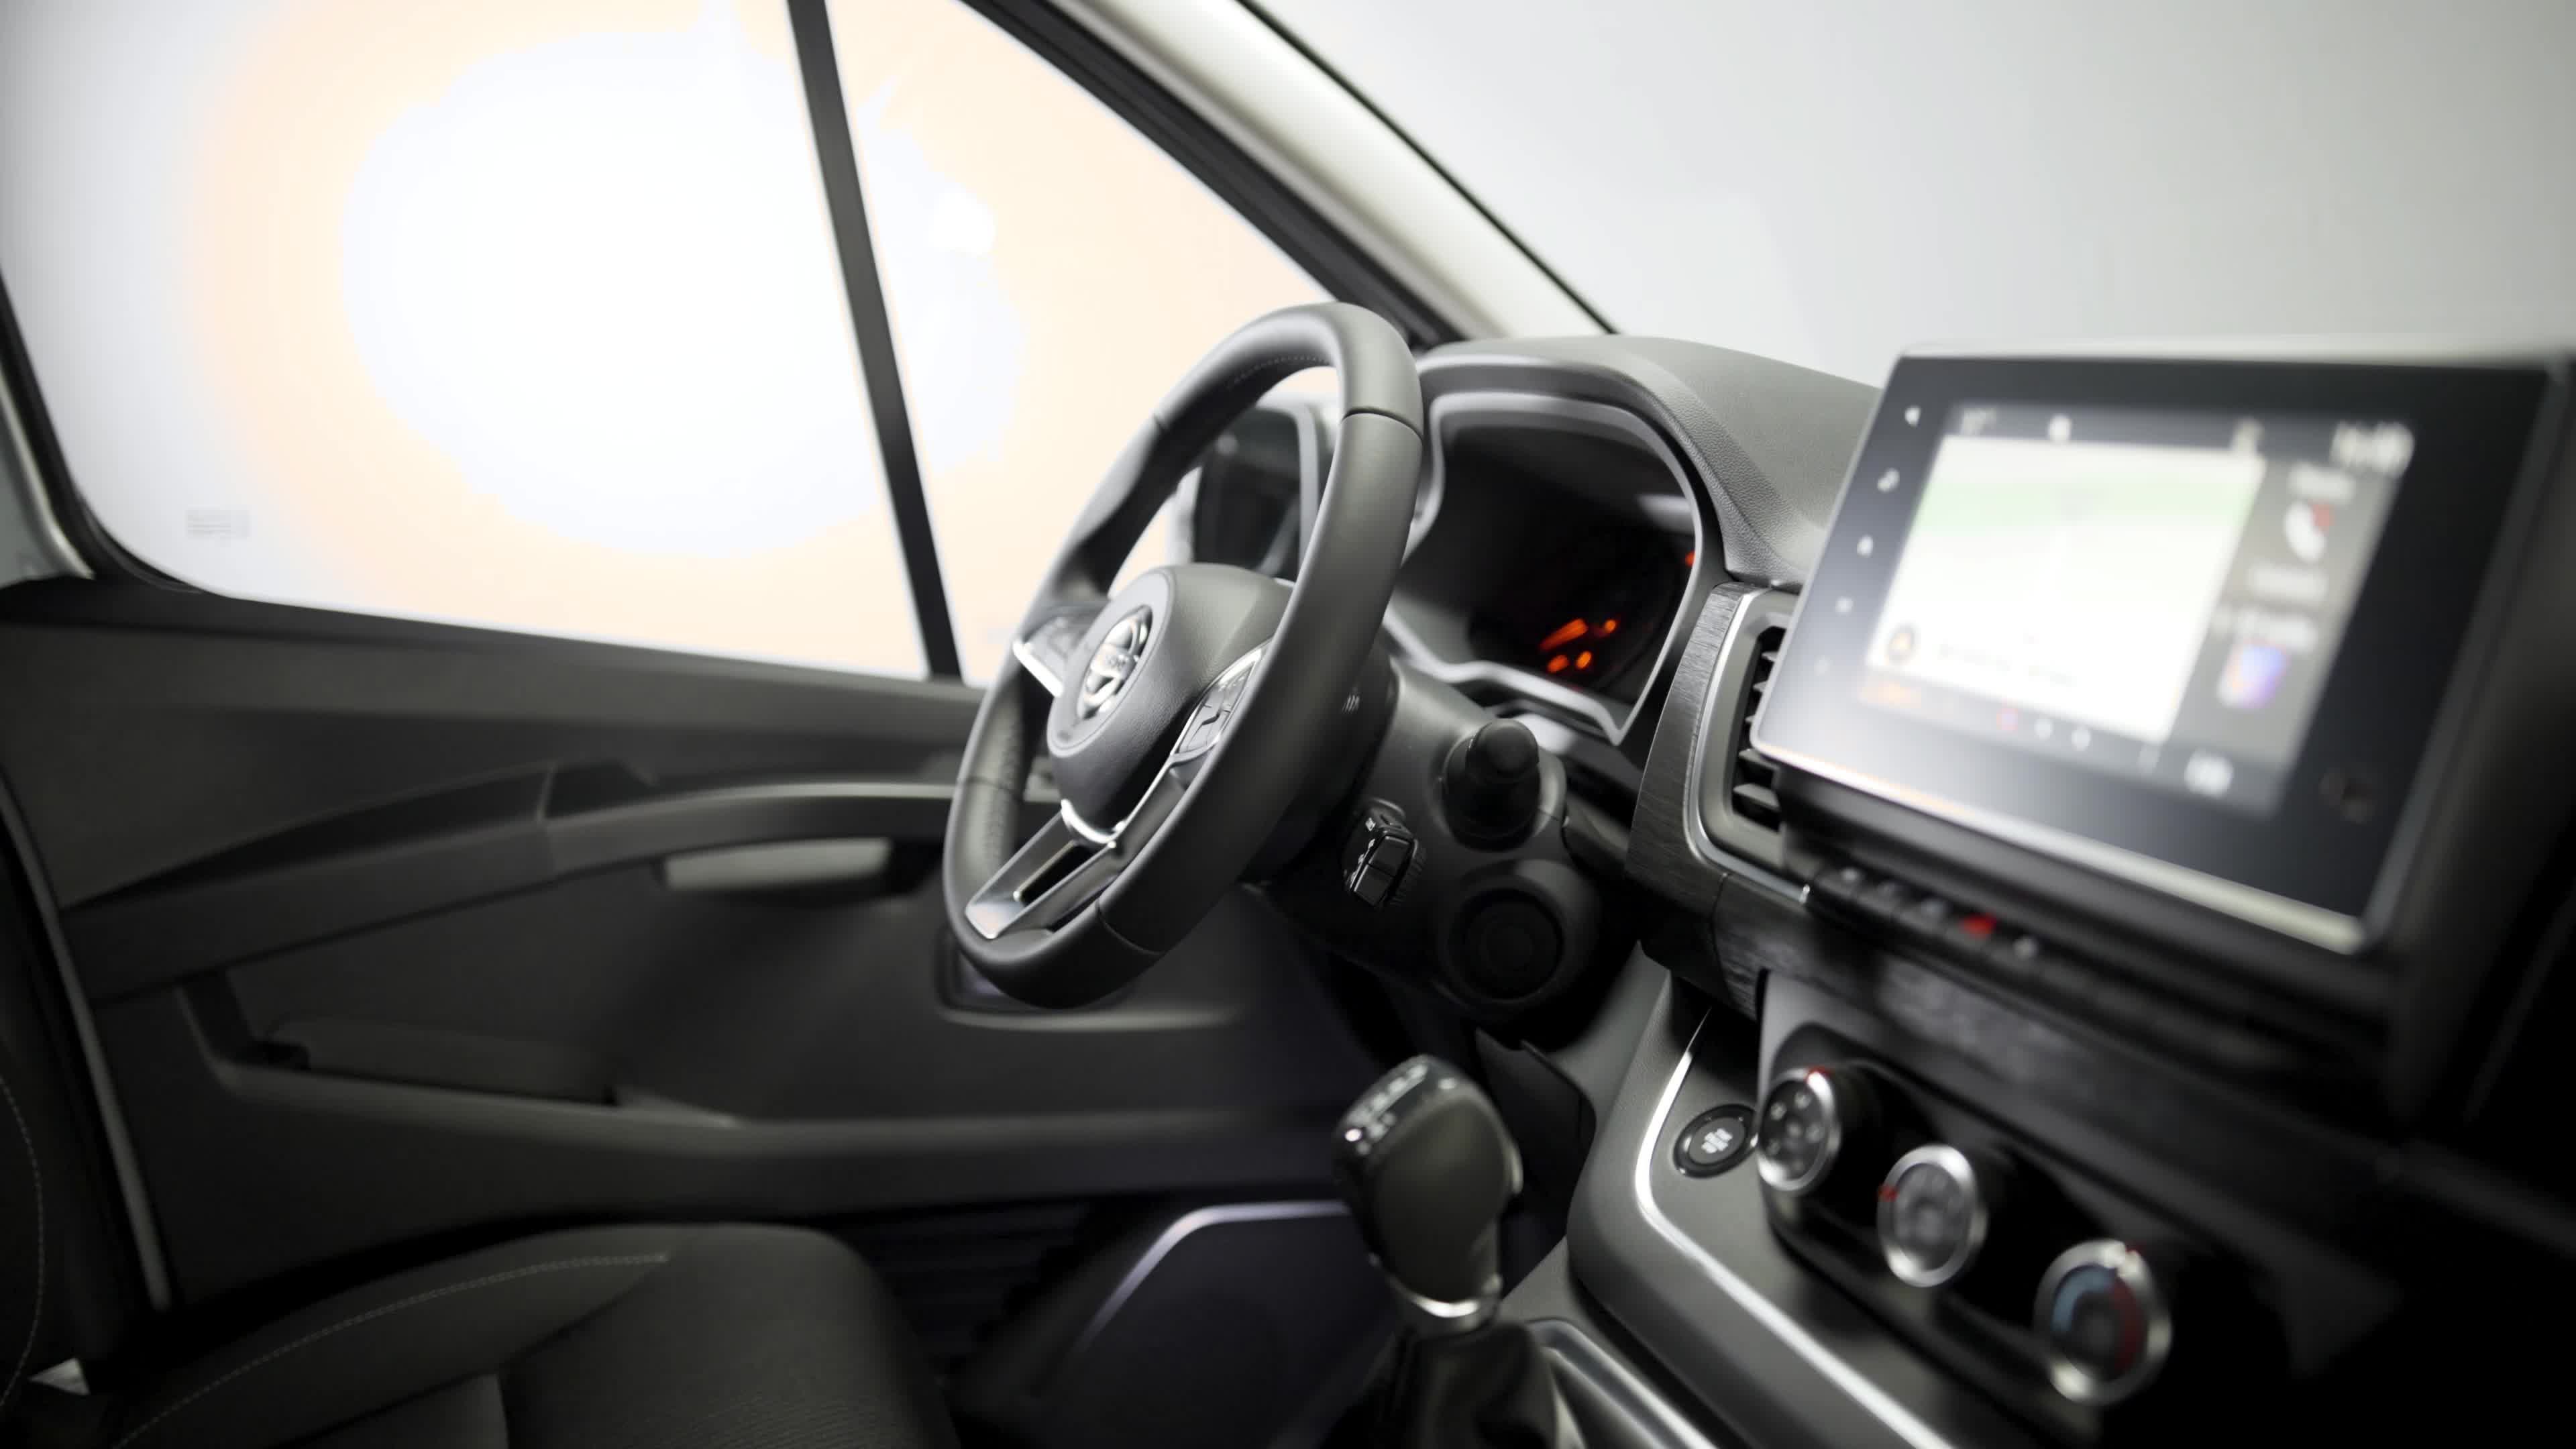 Nissan upgrades the NV300 Combi with sharper look and feel, enhanced powertrain and new safety technologies - Image 2